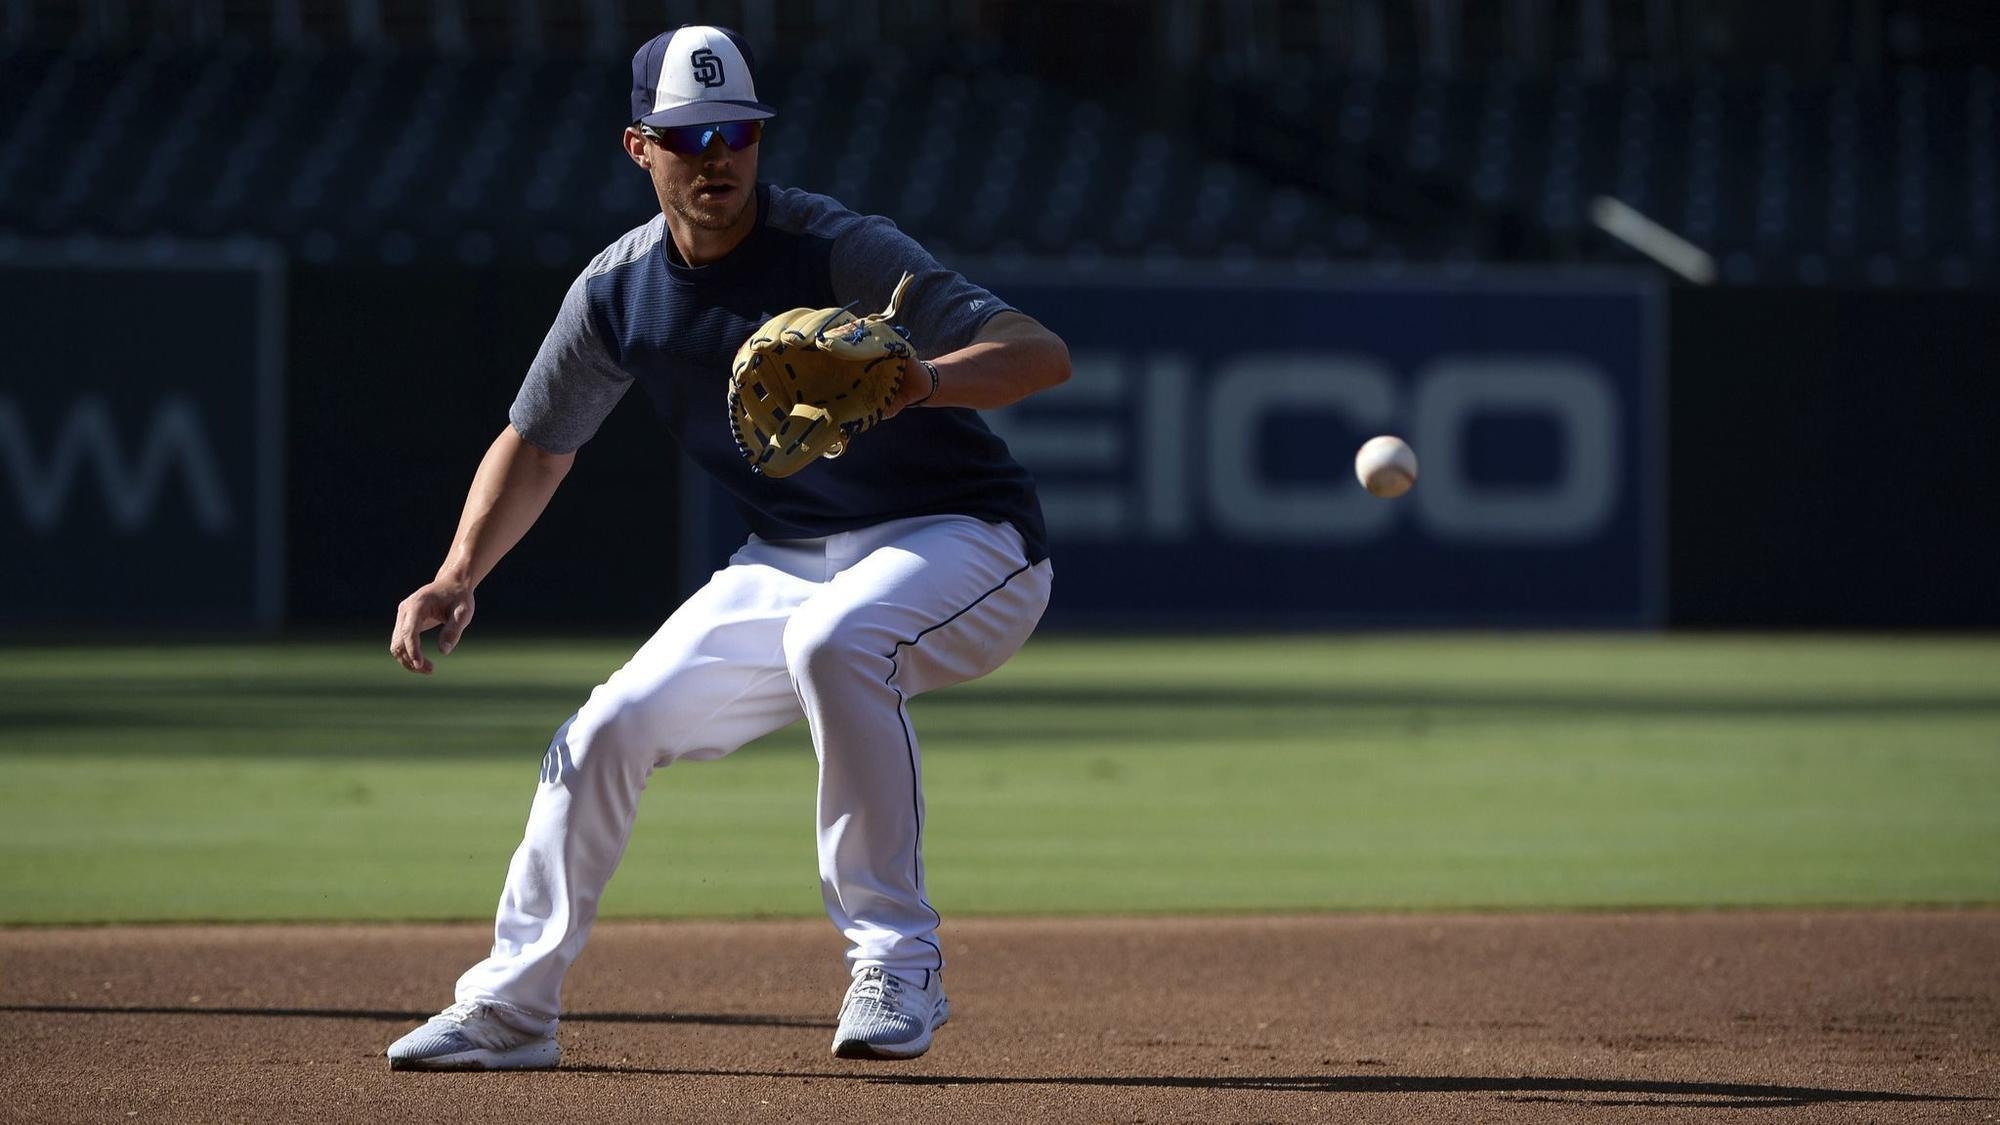 Sd-sp-padres-wil-myers-third-base-mlb-20180814